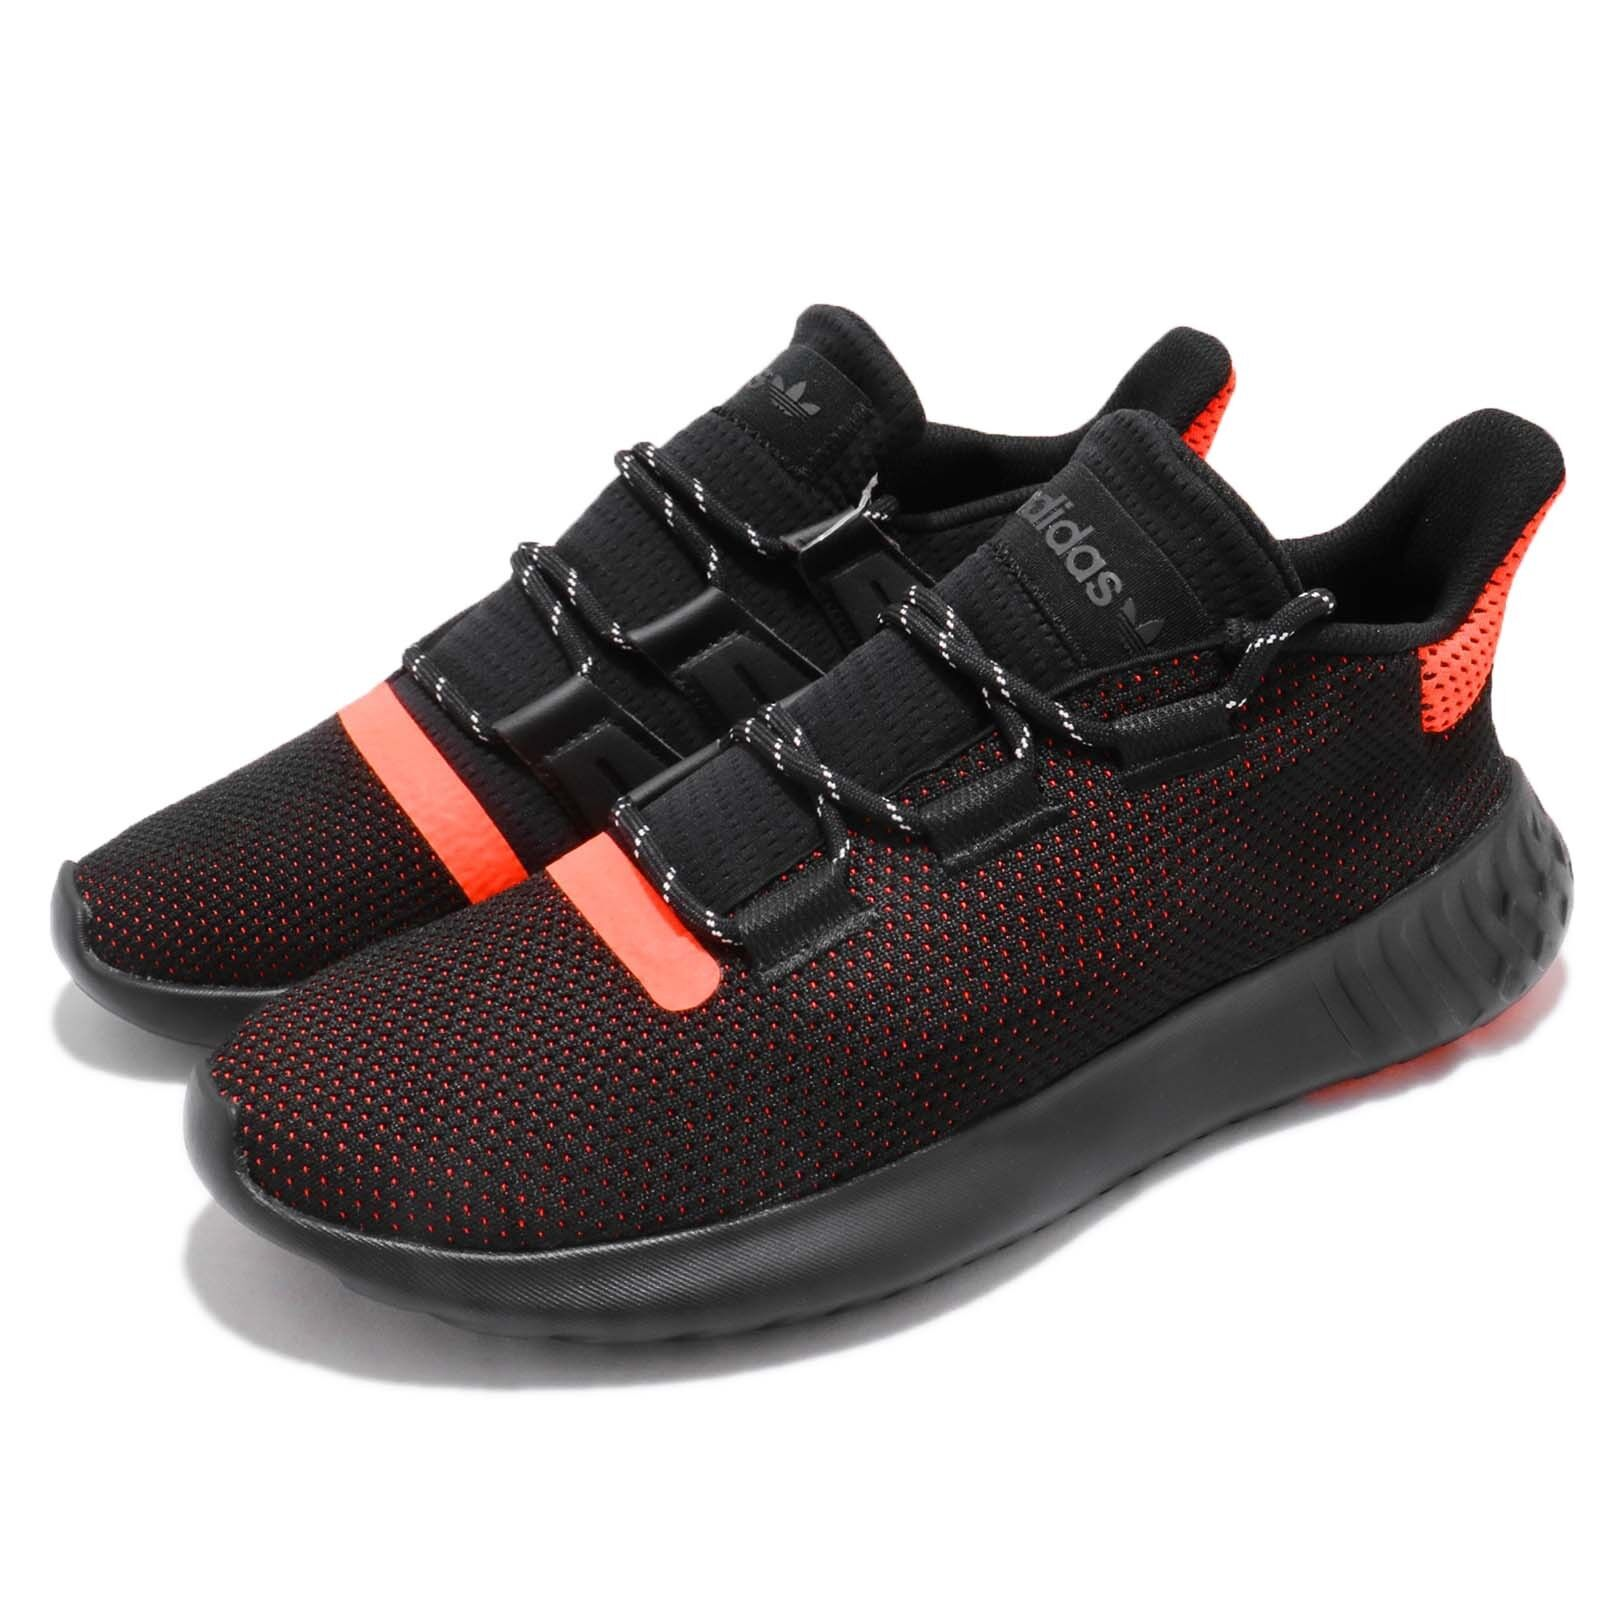 adidas Originals Tubular Dusk Black Solar Red Herren Laufschuhe Sneakers AQ1189